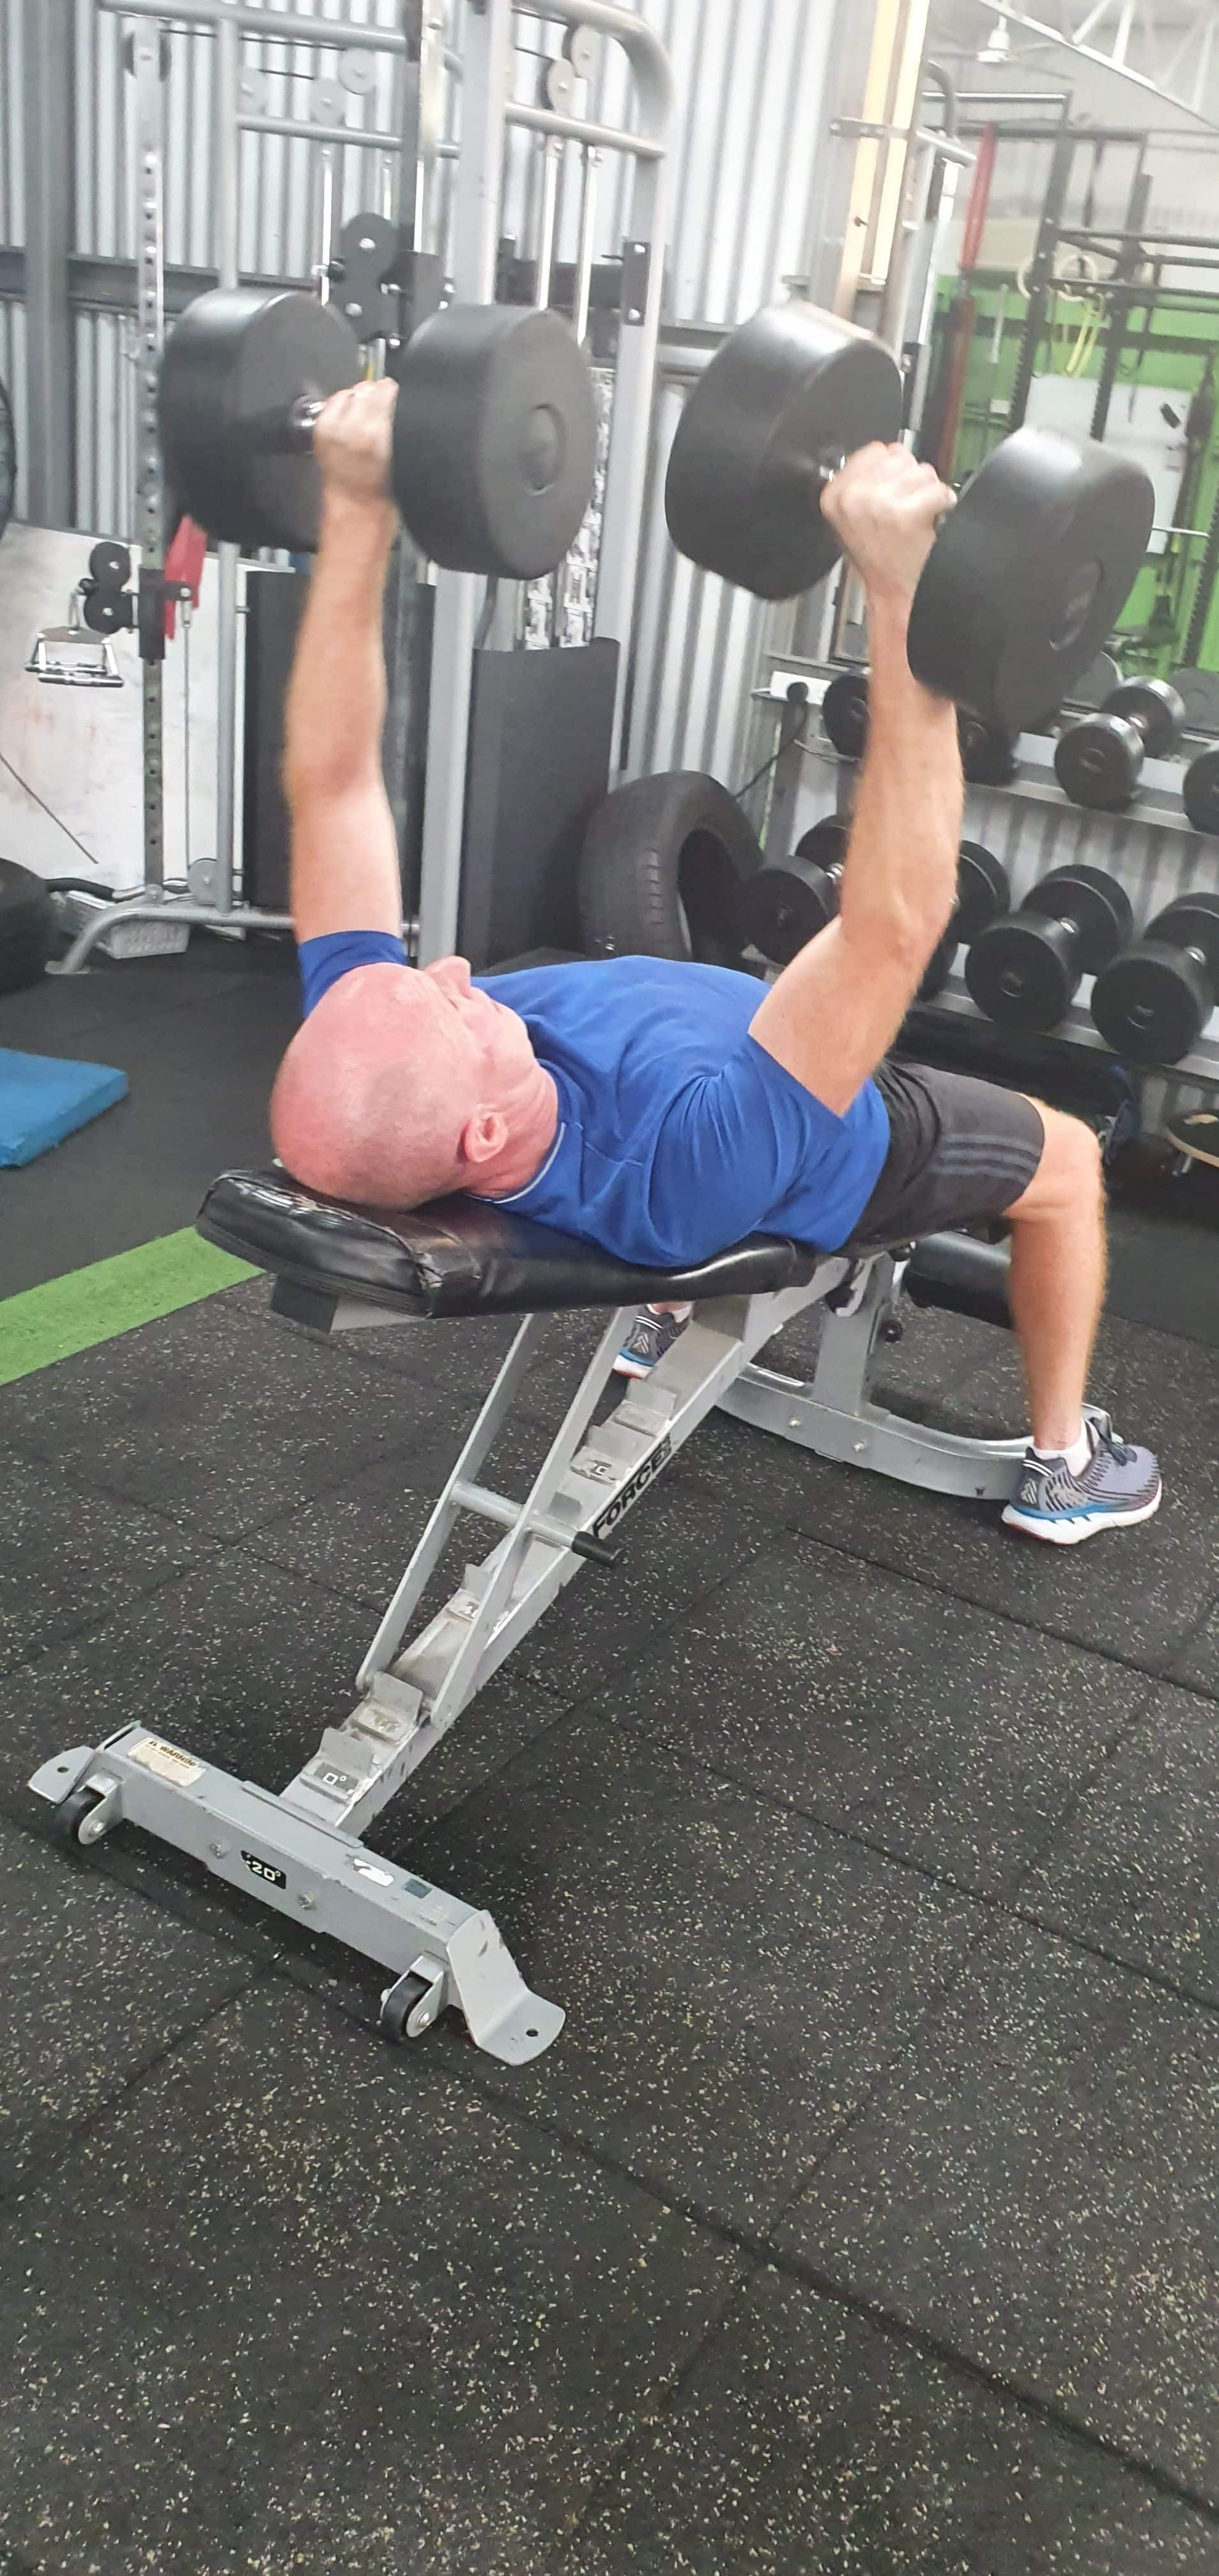 1 on 1 strength training in our personal training gym